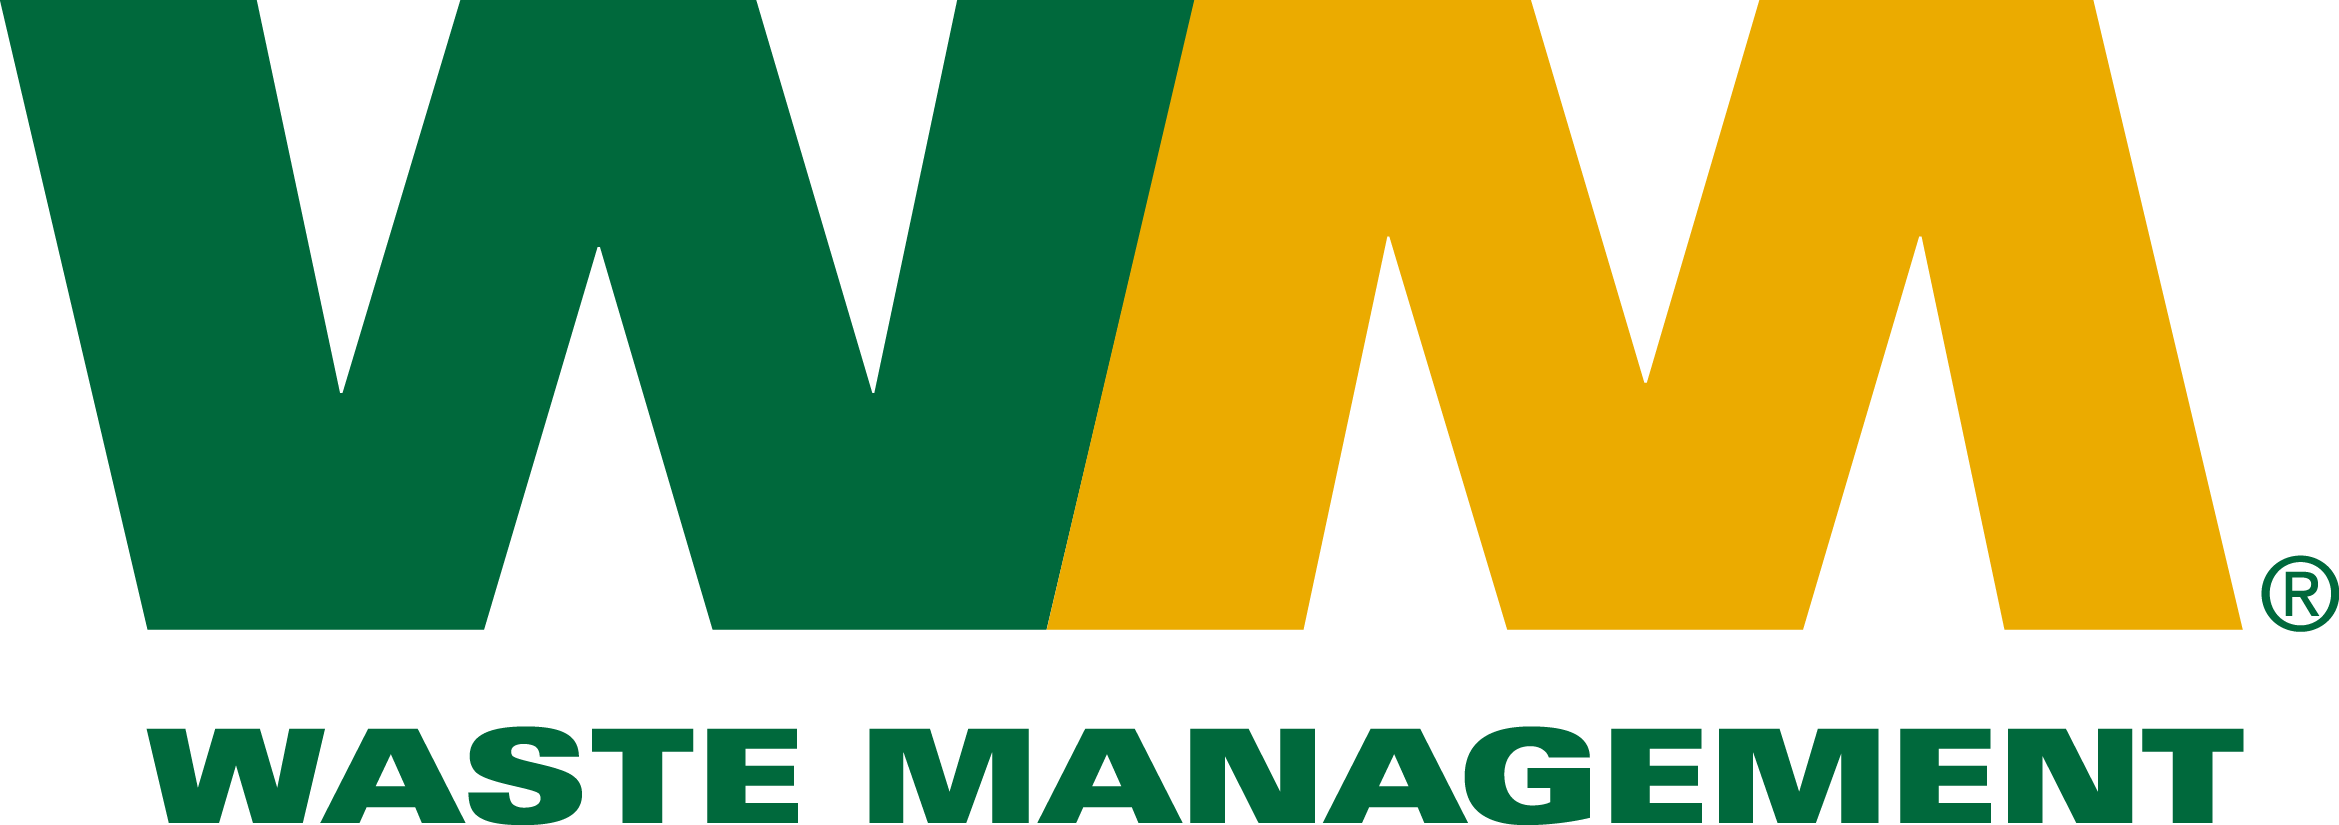 Waste Management logo.png